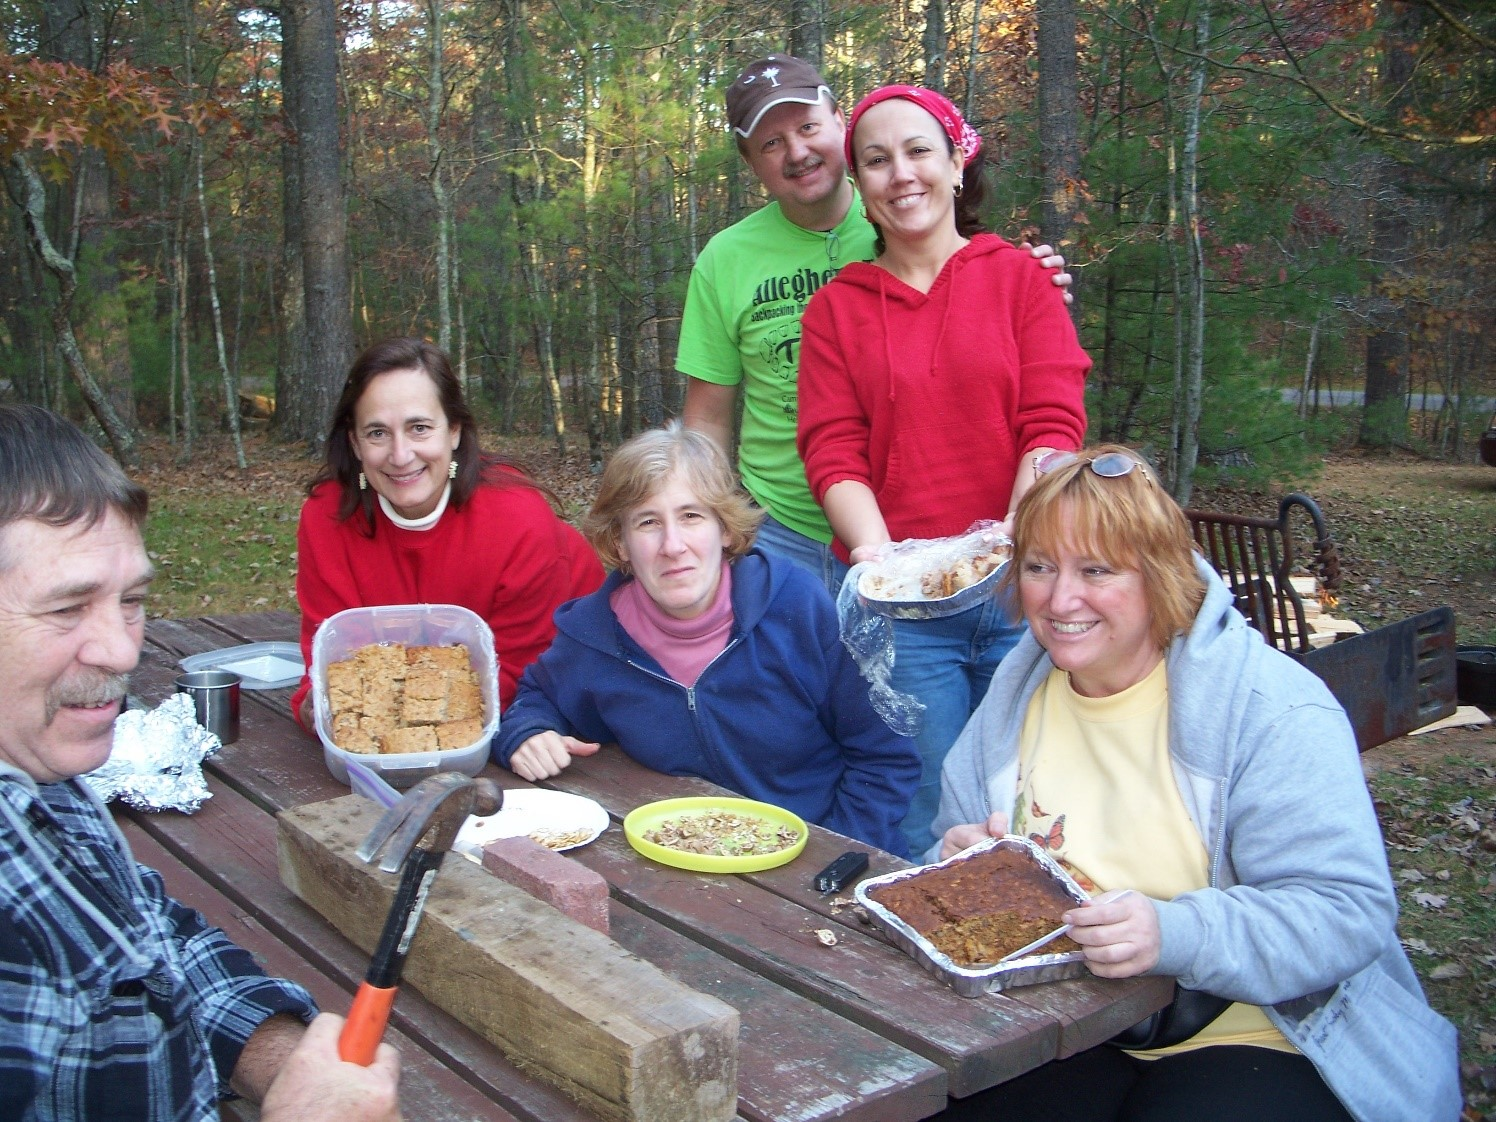 Friends show-off wild foods after cracking Hickory nuts. Doug Wood photo.